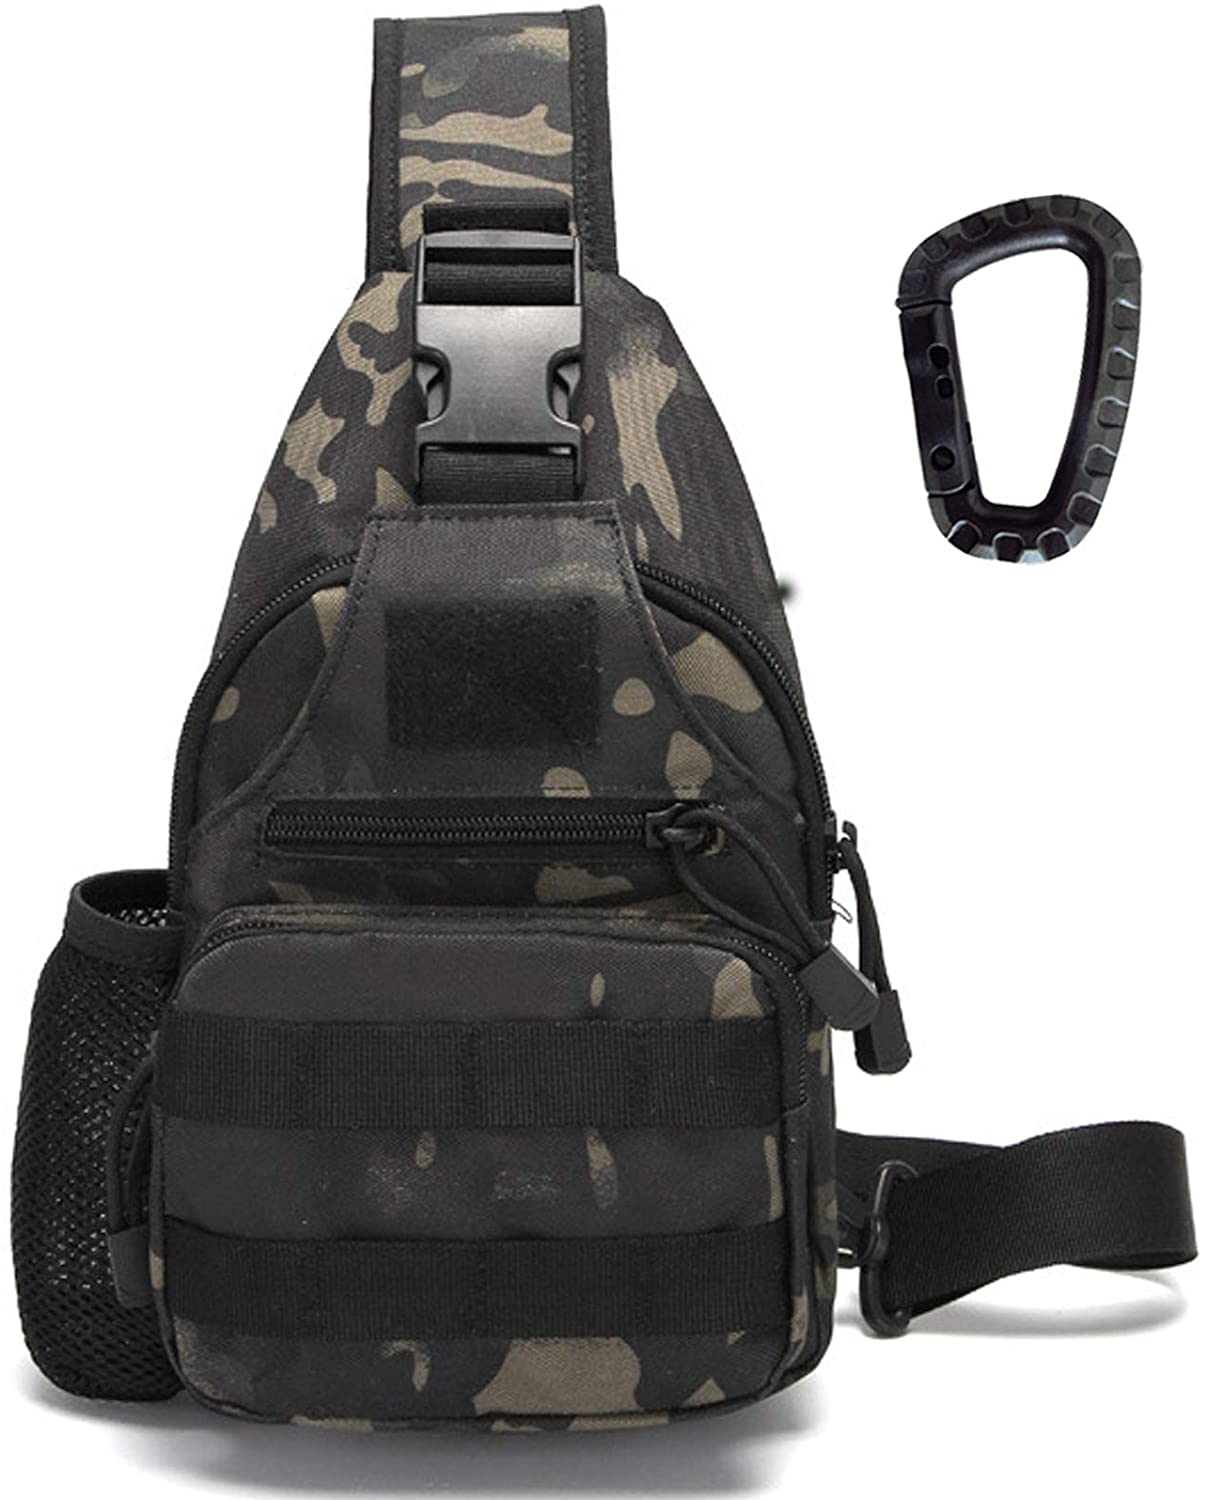 Ydmpro Tactical Sling Bag, Chest Pack Molle Daypack Military Crossbody Shoulder Bags